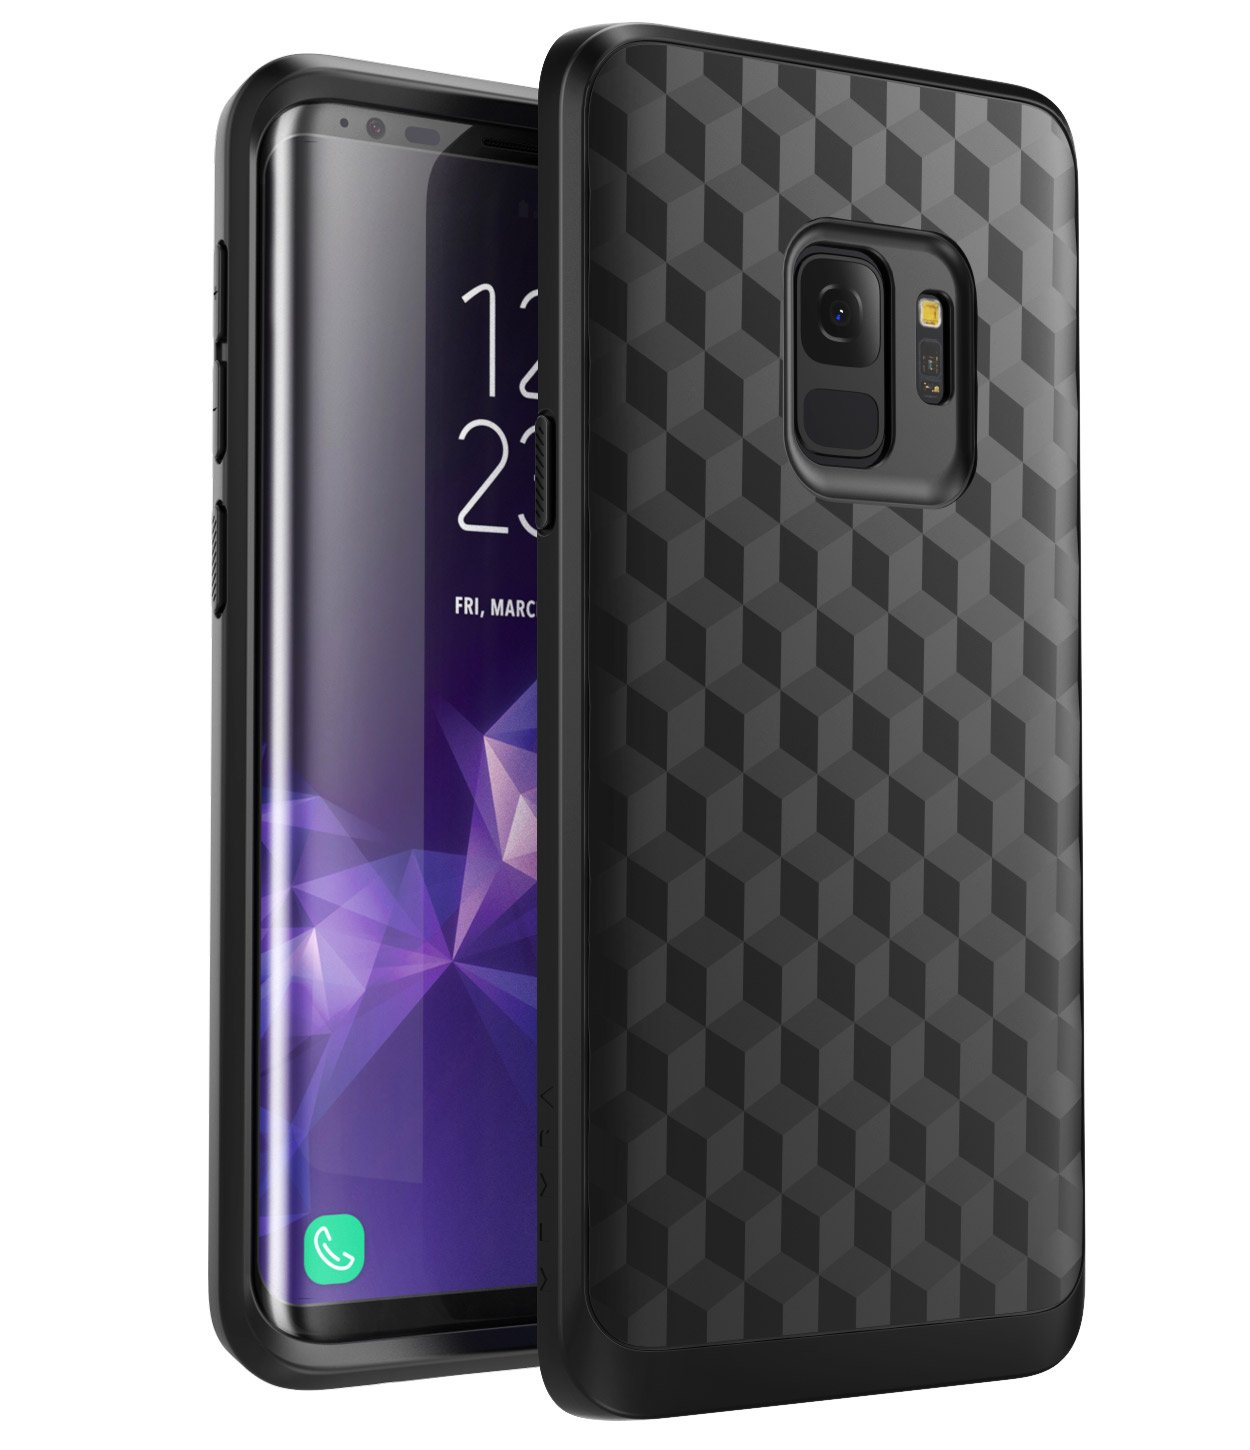 separation shoes 85f10 9f908 Galaxy S9+ Plus Case, Mumba Premium TPU Slim Fit Flexible Protective Case  for Samsung Galaxy S9+ Plus (2018 Release) (Black)